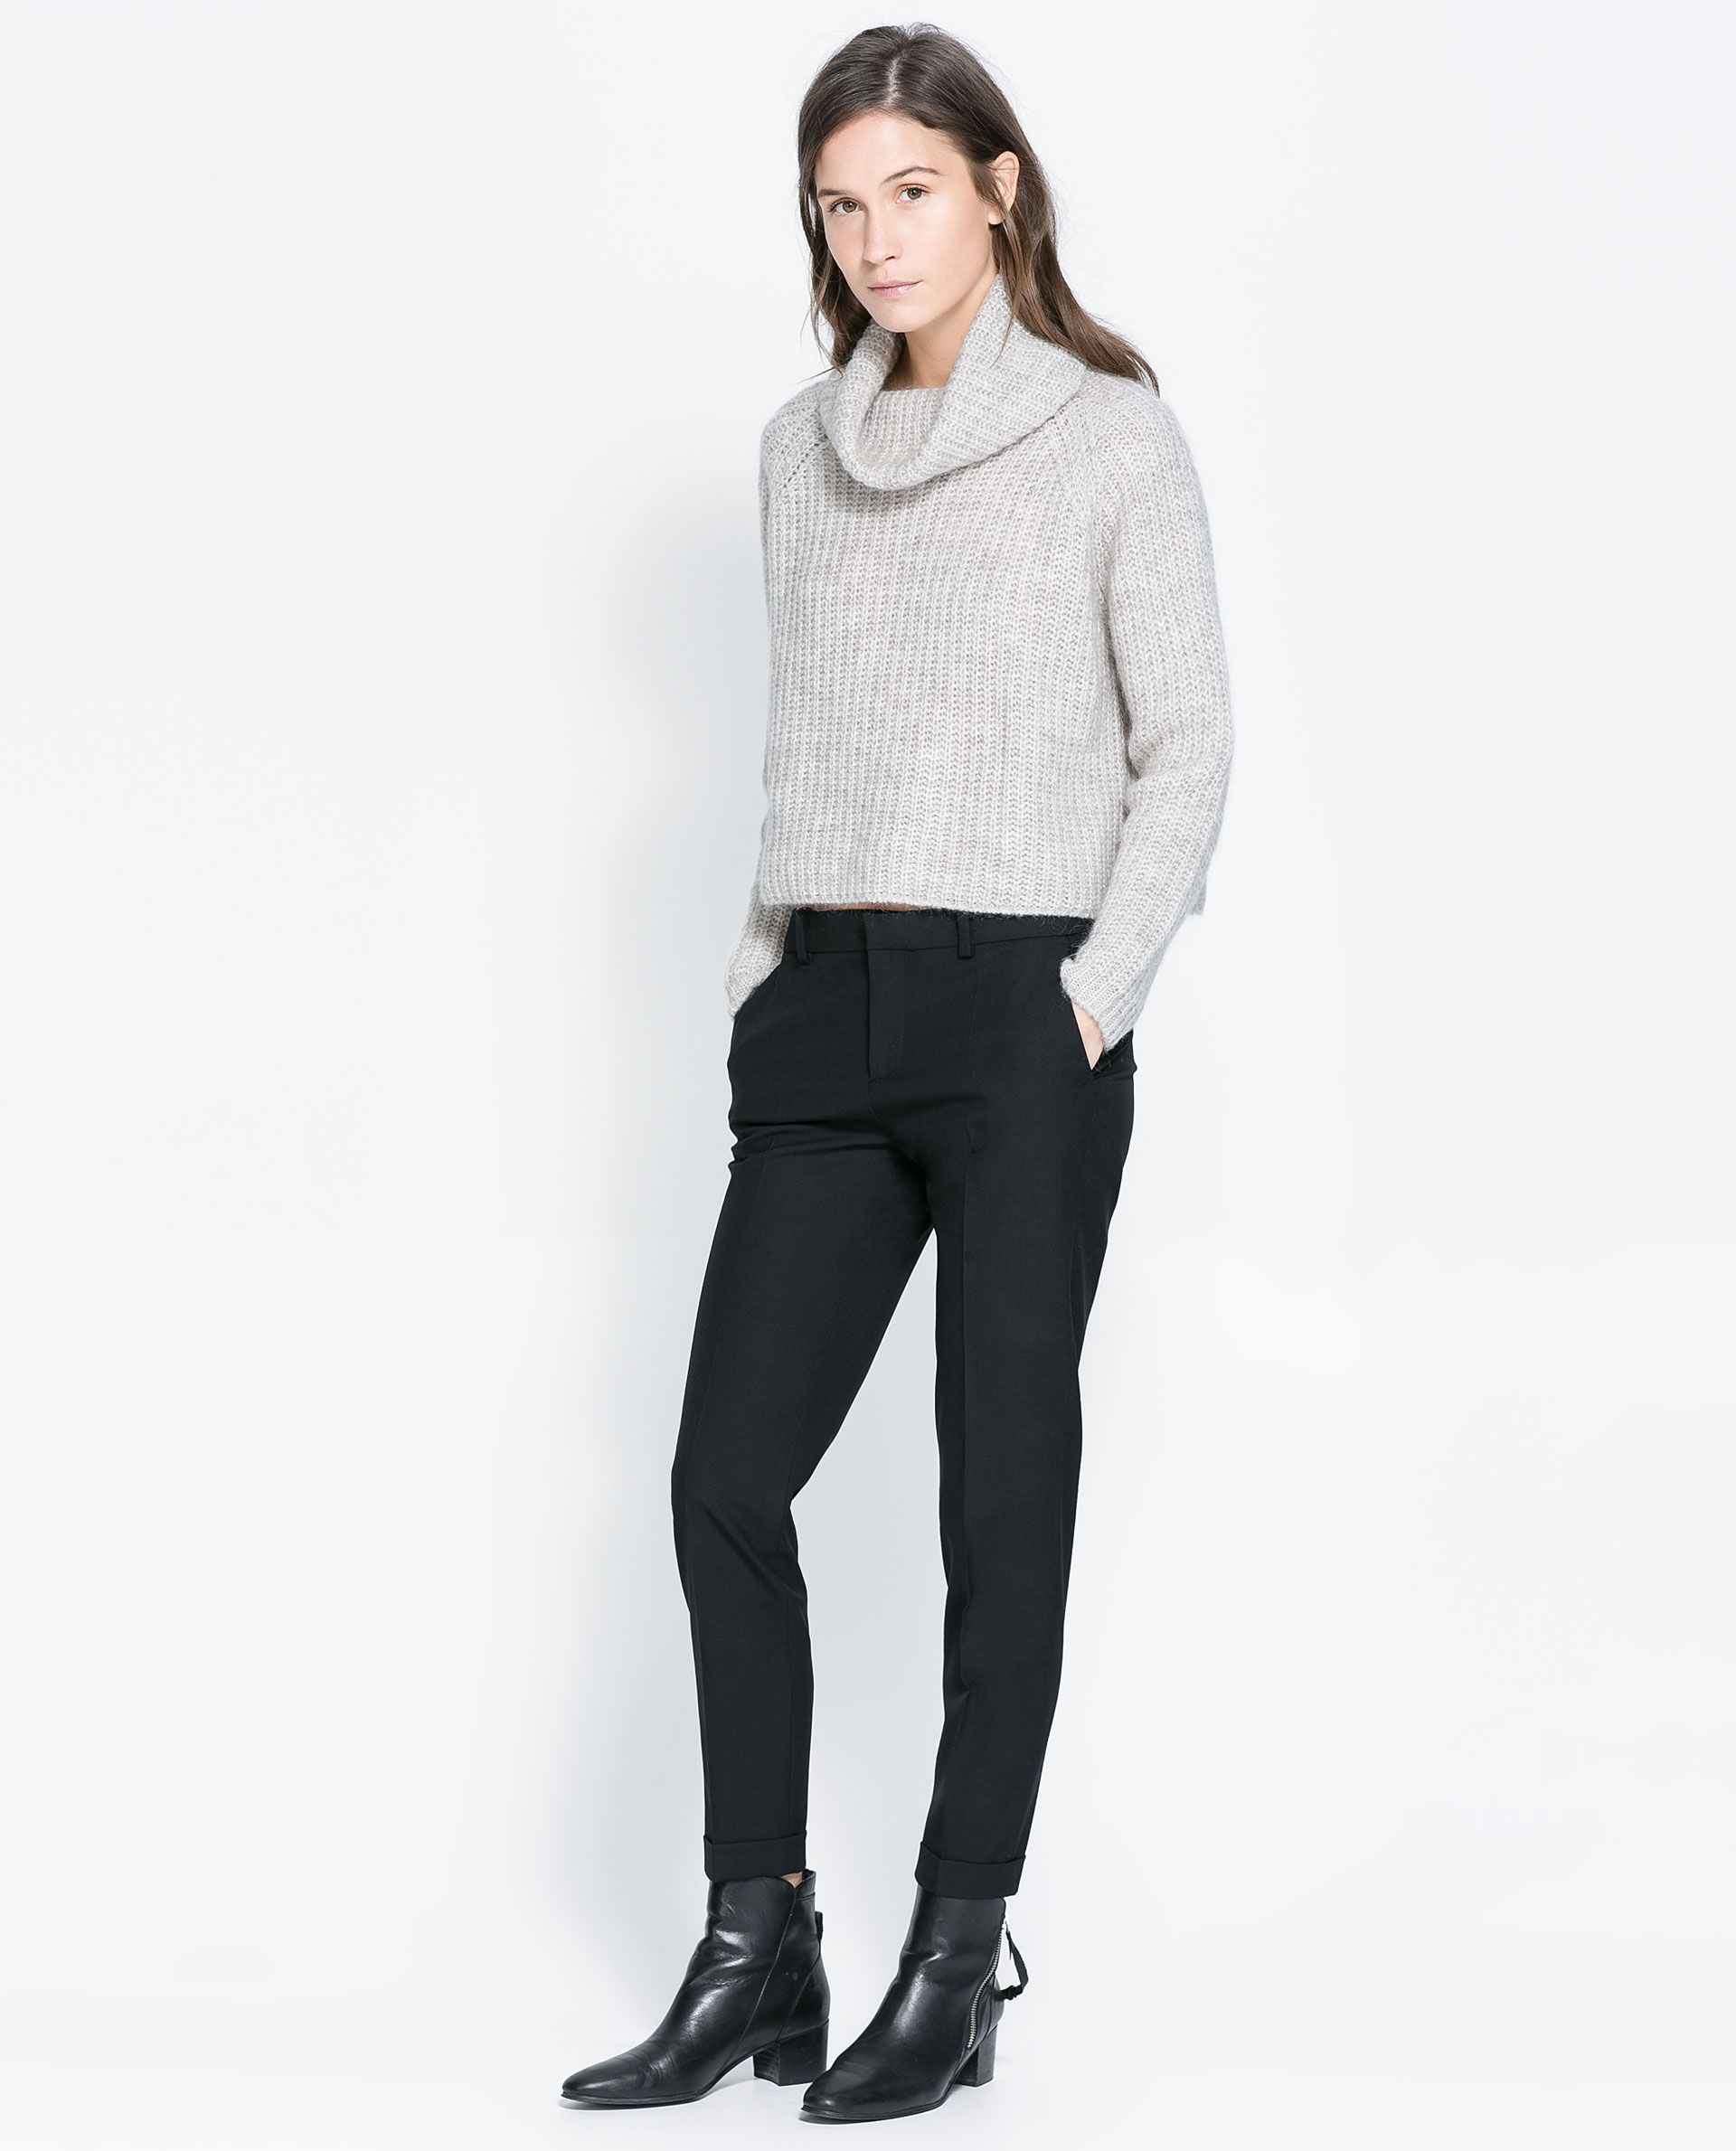 COOL WOOL TROUSERS - Trousers - WOMAN | ZARA United States